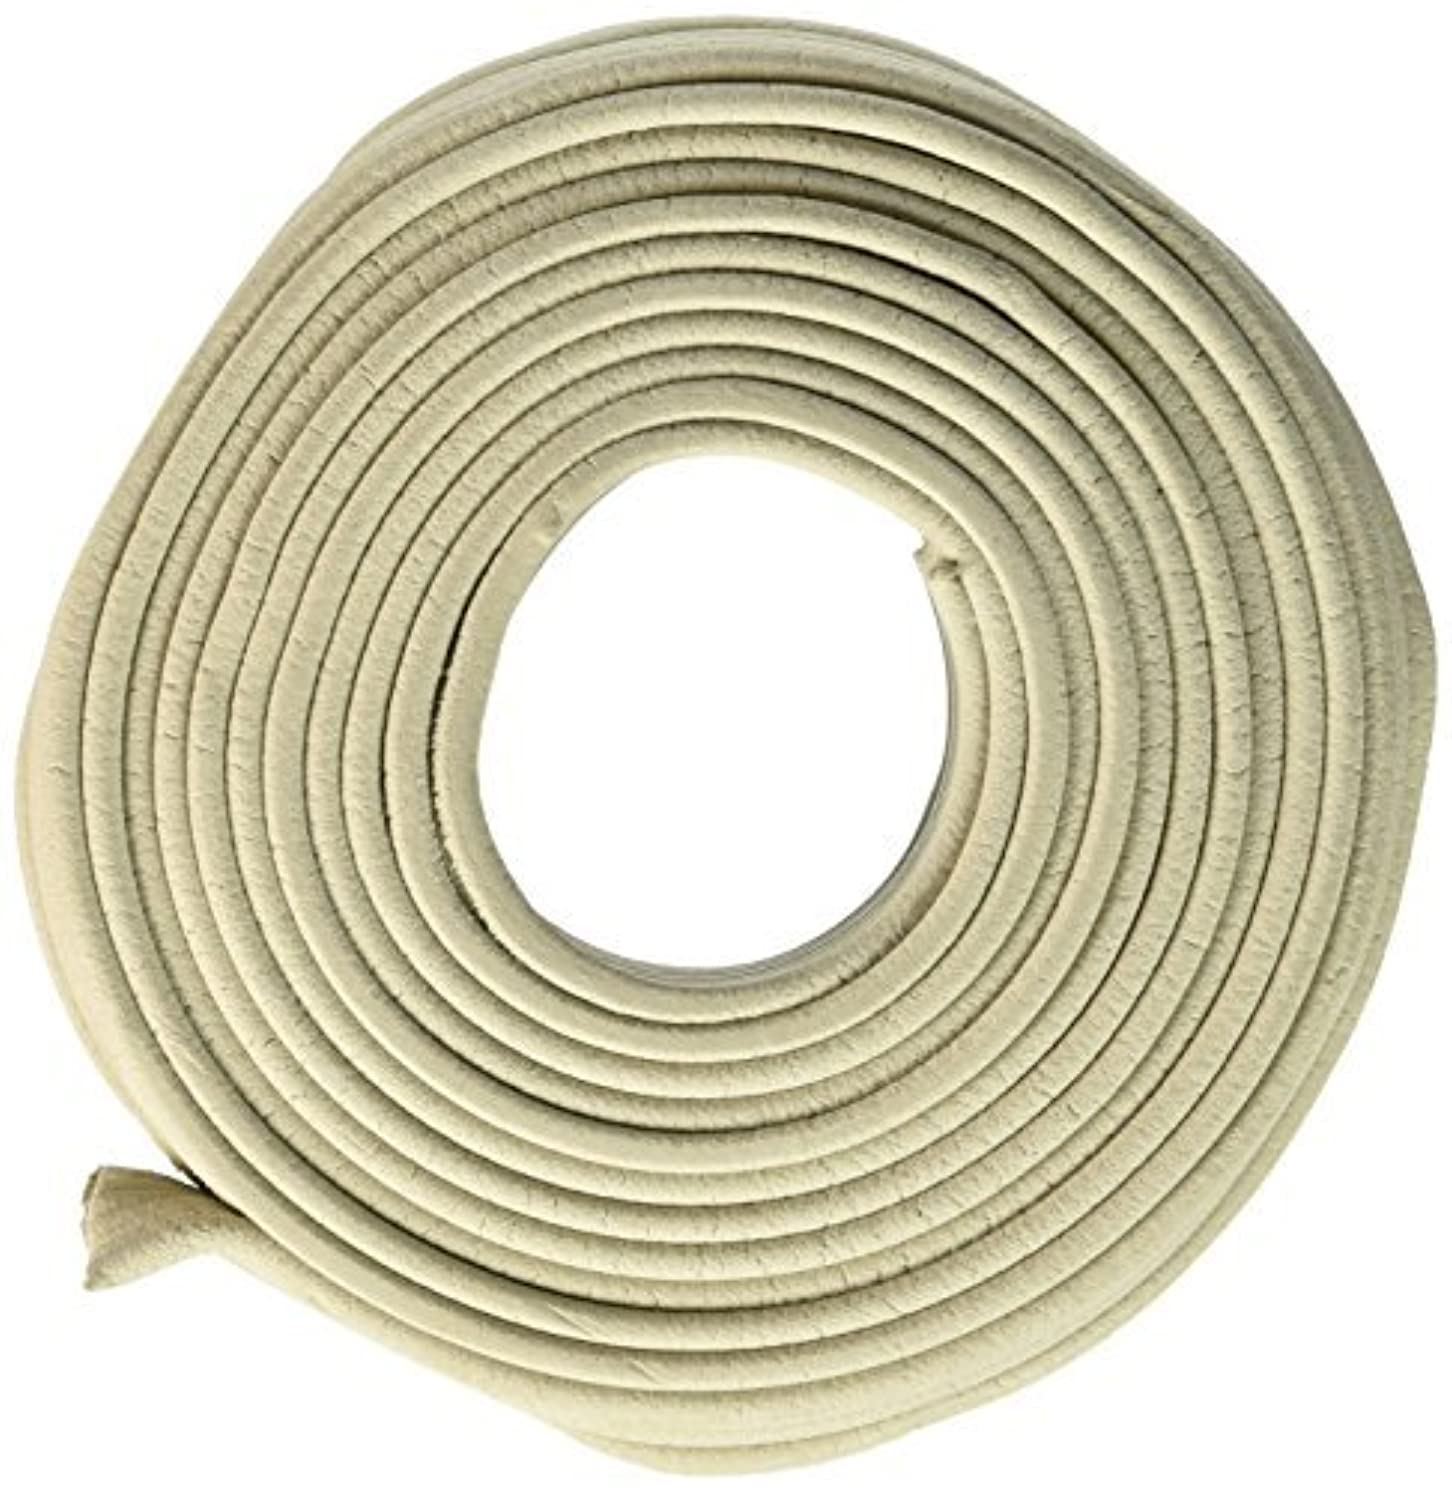 Frost King B2 Mortite Caulking Cord 19-ounce, 90-Foot Long, Grey by Frost King